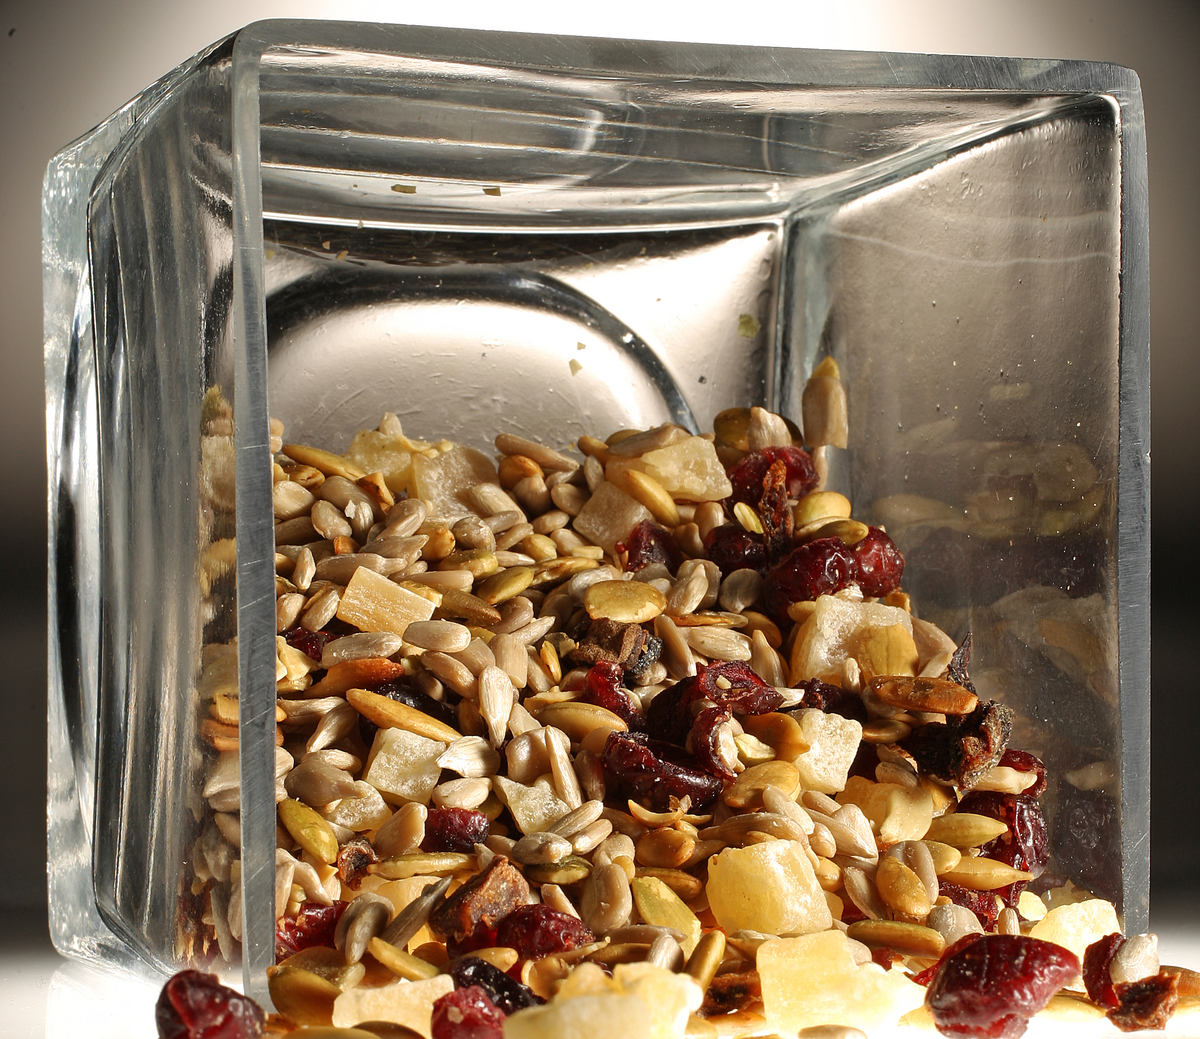 Trail mix are in a glass bowl.